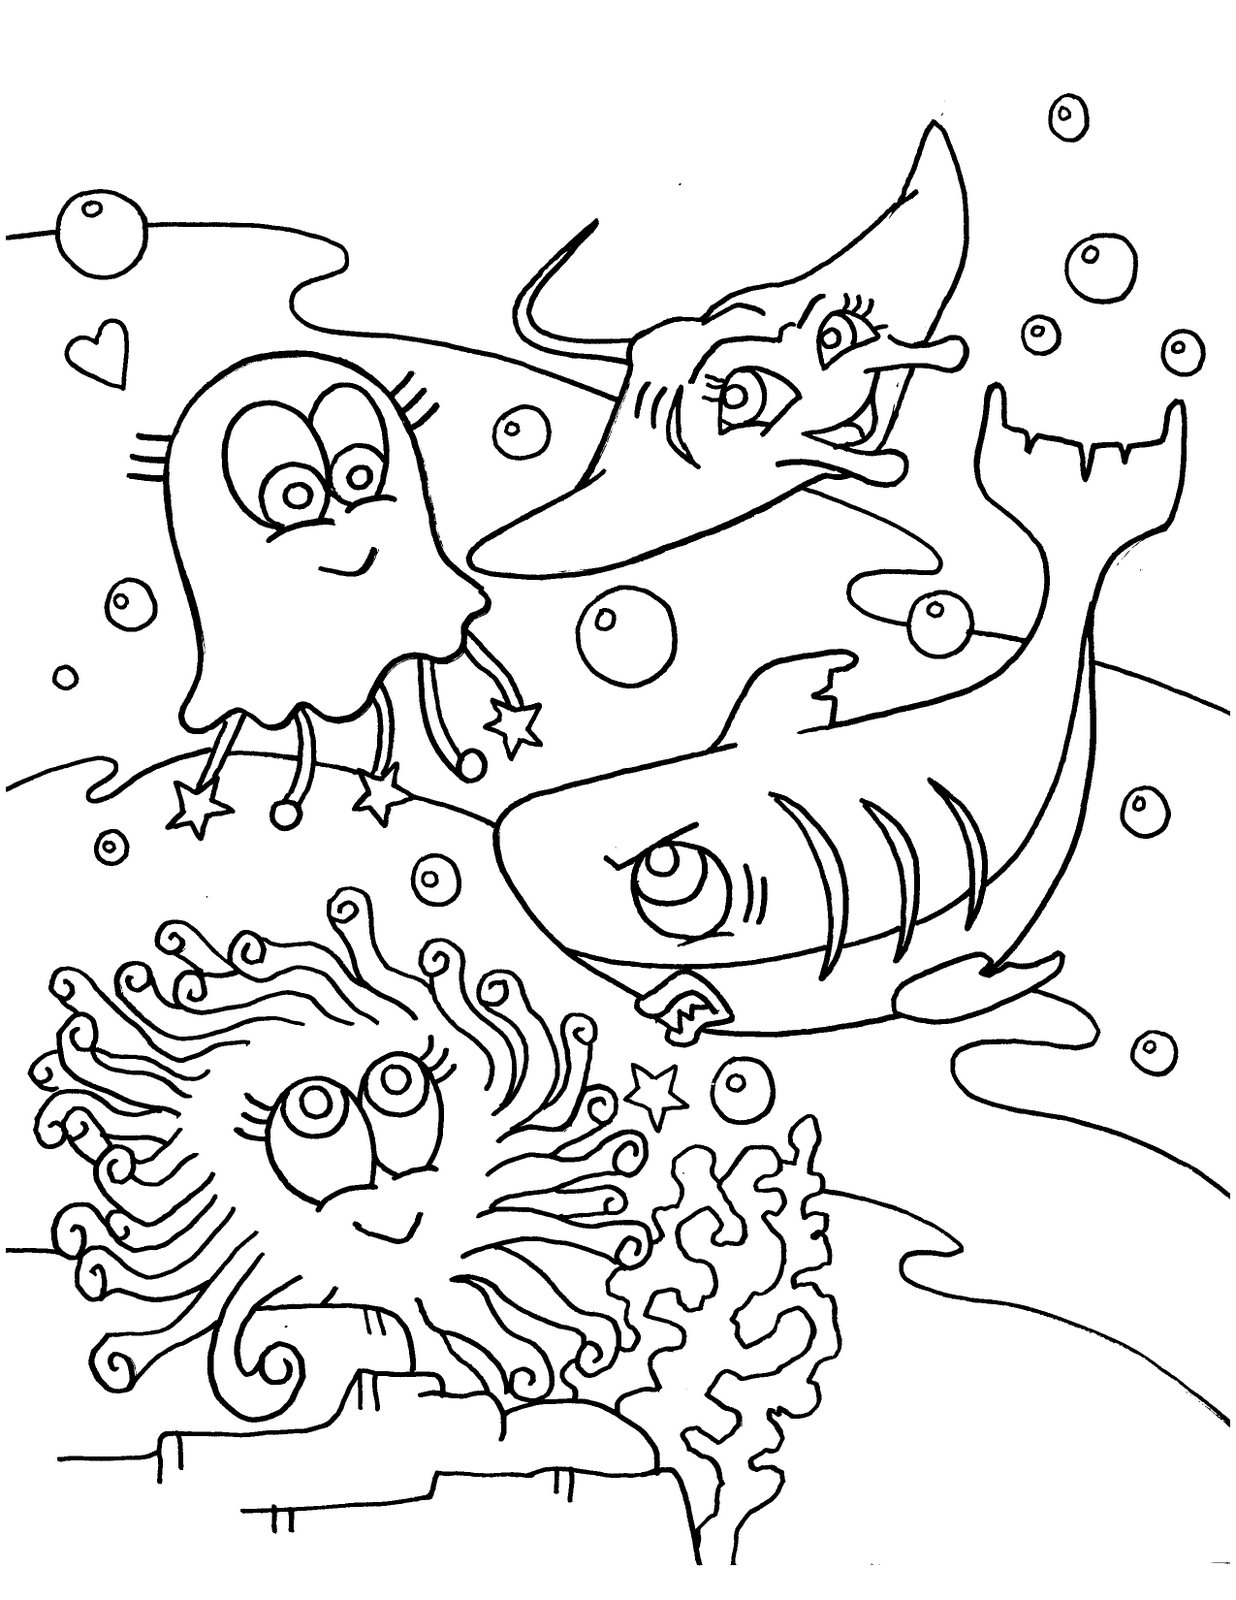 1236x1600 Introducing Sea Life Online Coloring Pages